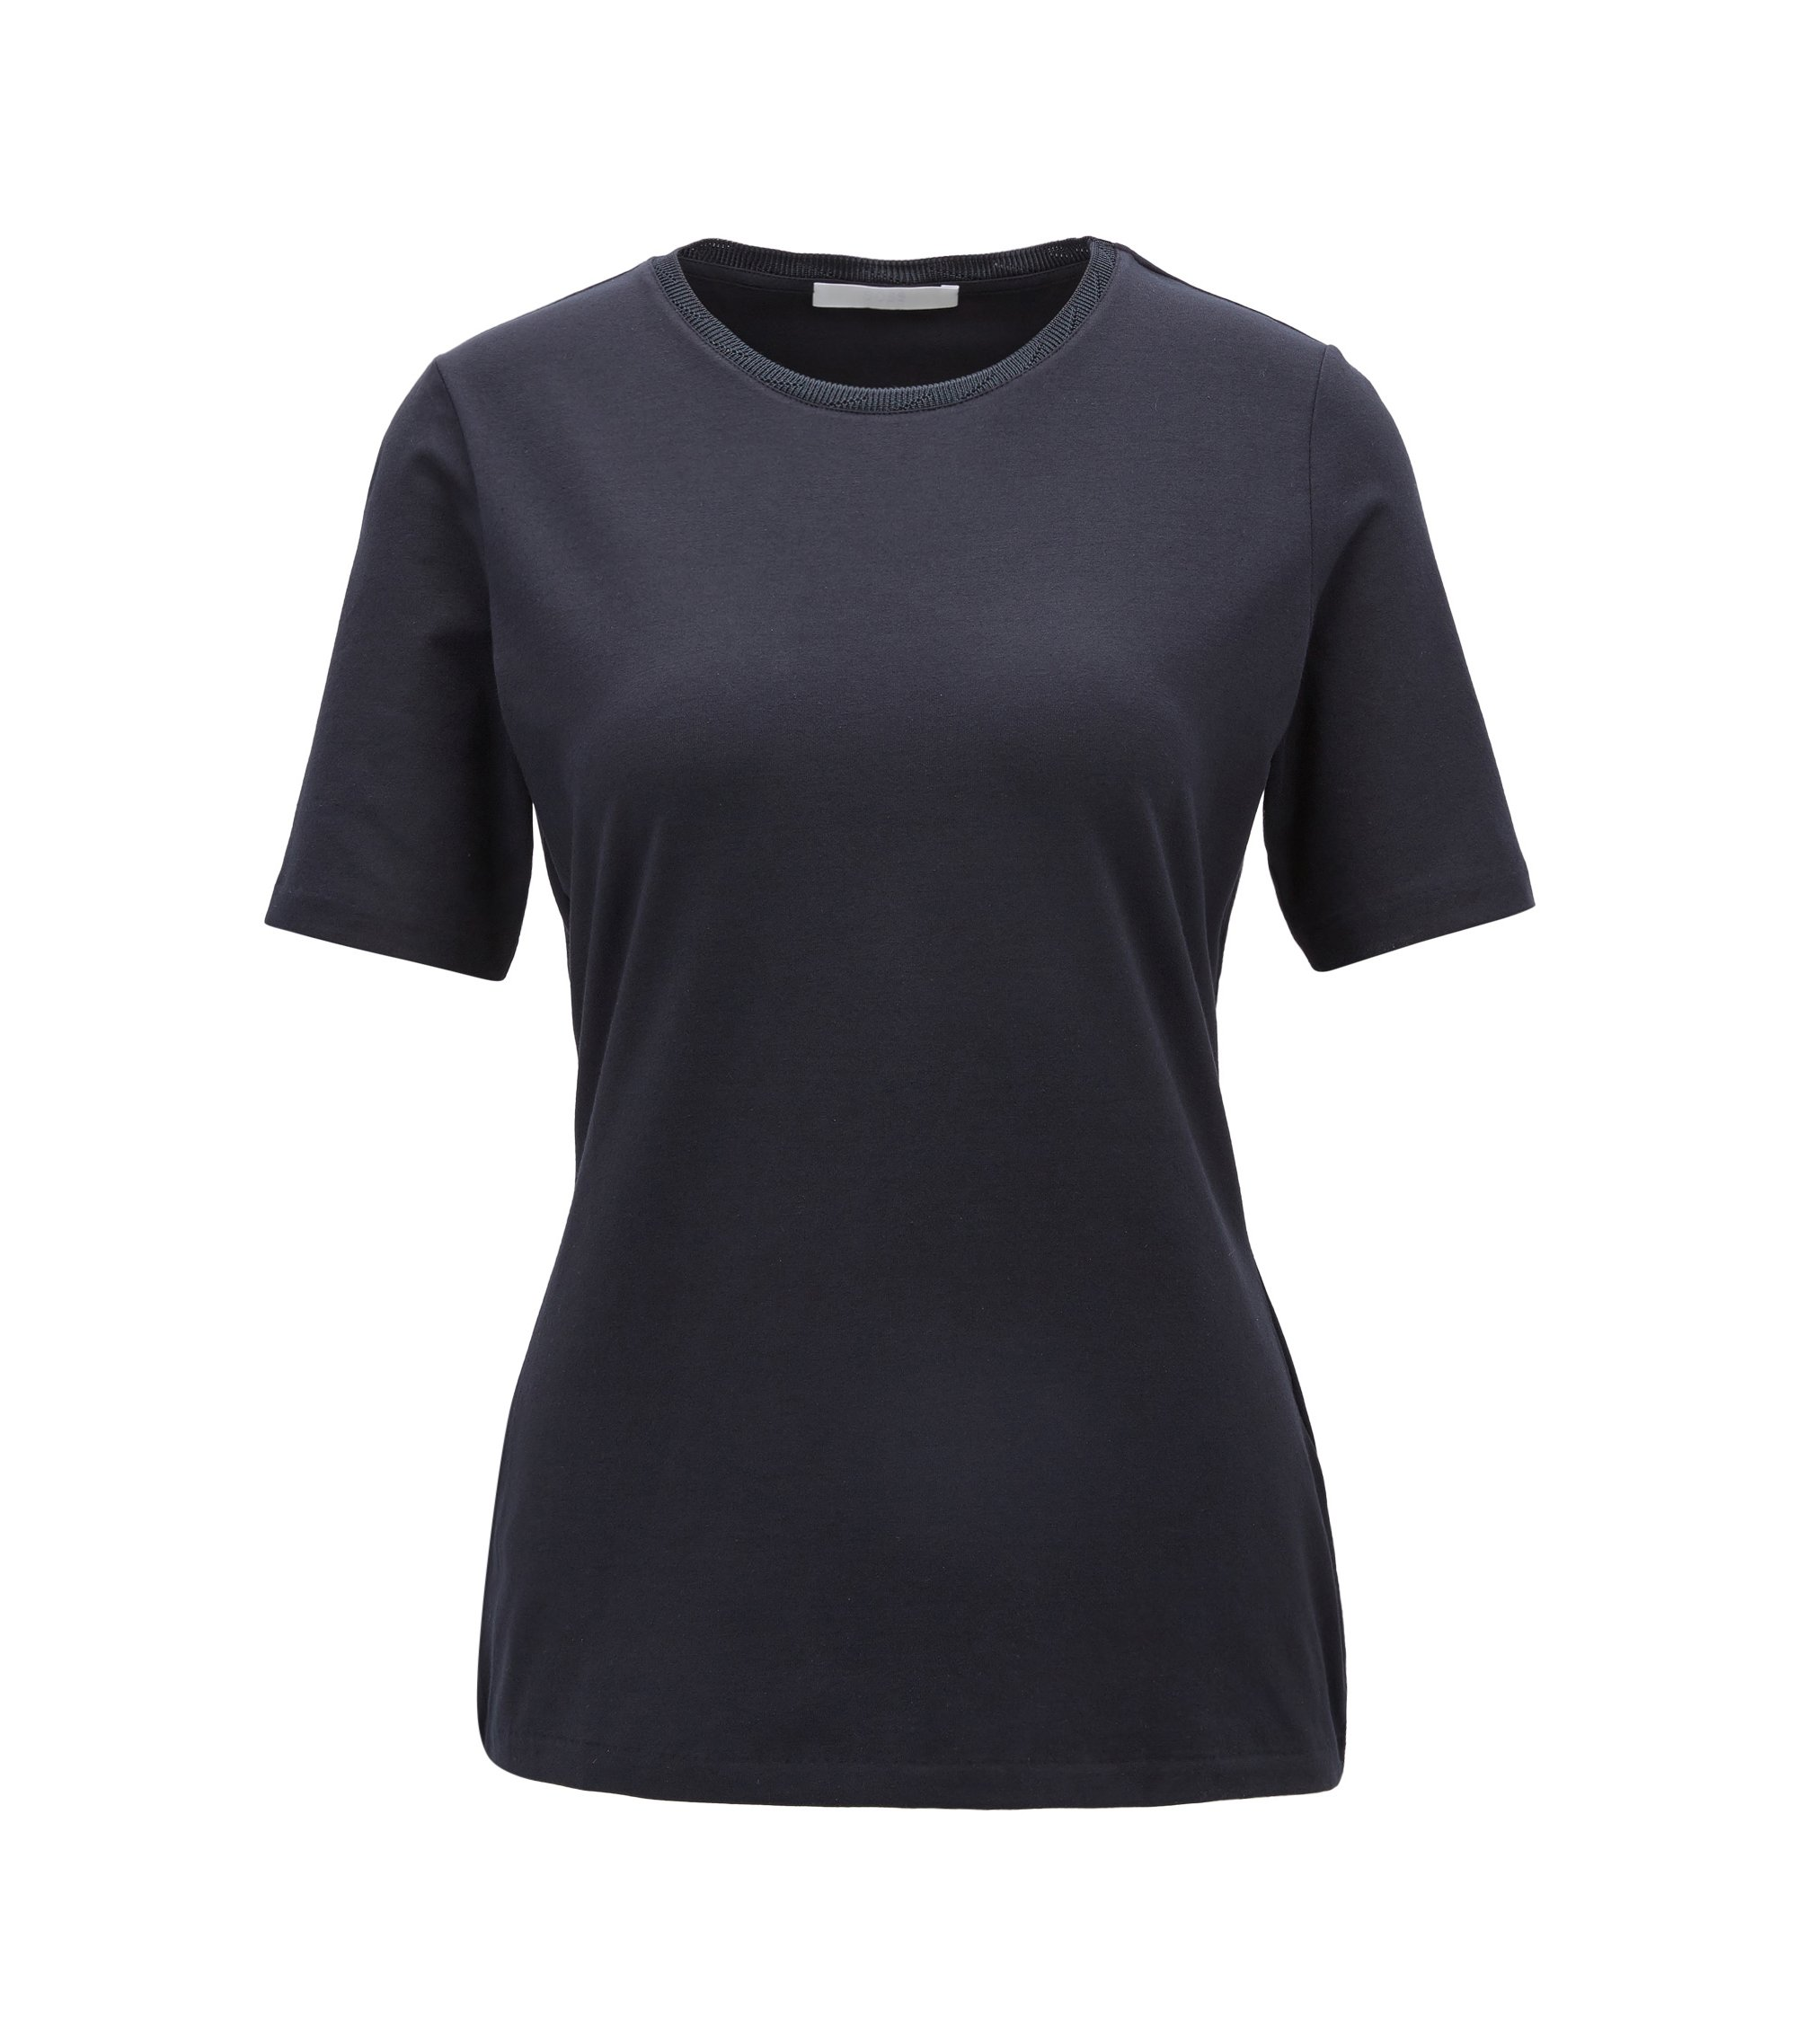 Top Regular Fit à col ras-du-cou en jersey stretch, Bleu foncé